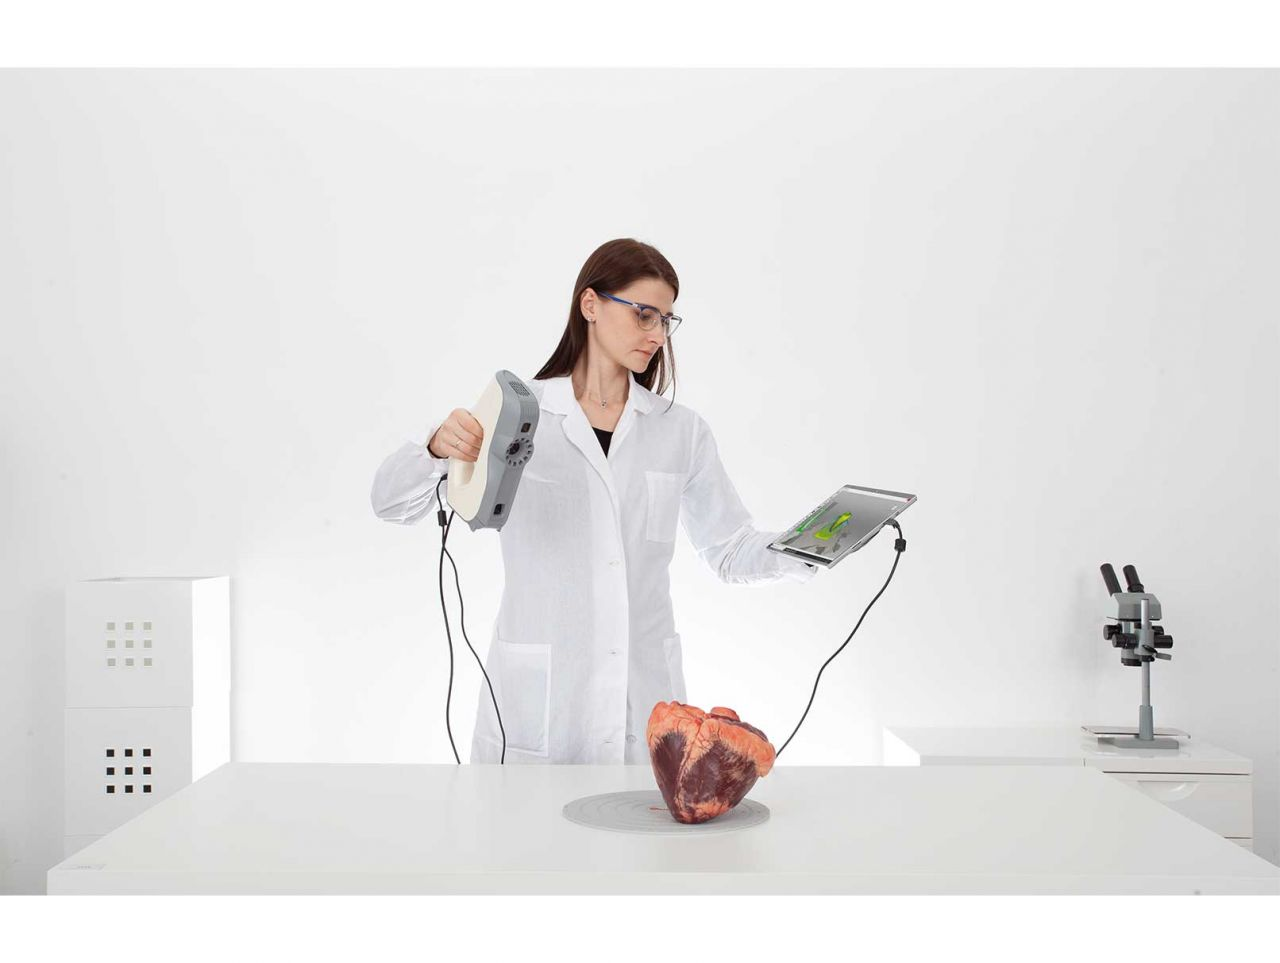 Scanning an animal heart with Artec Eva